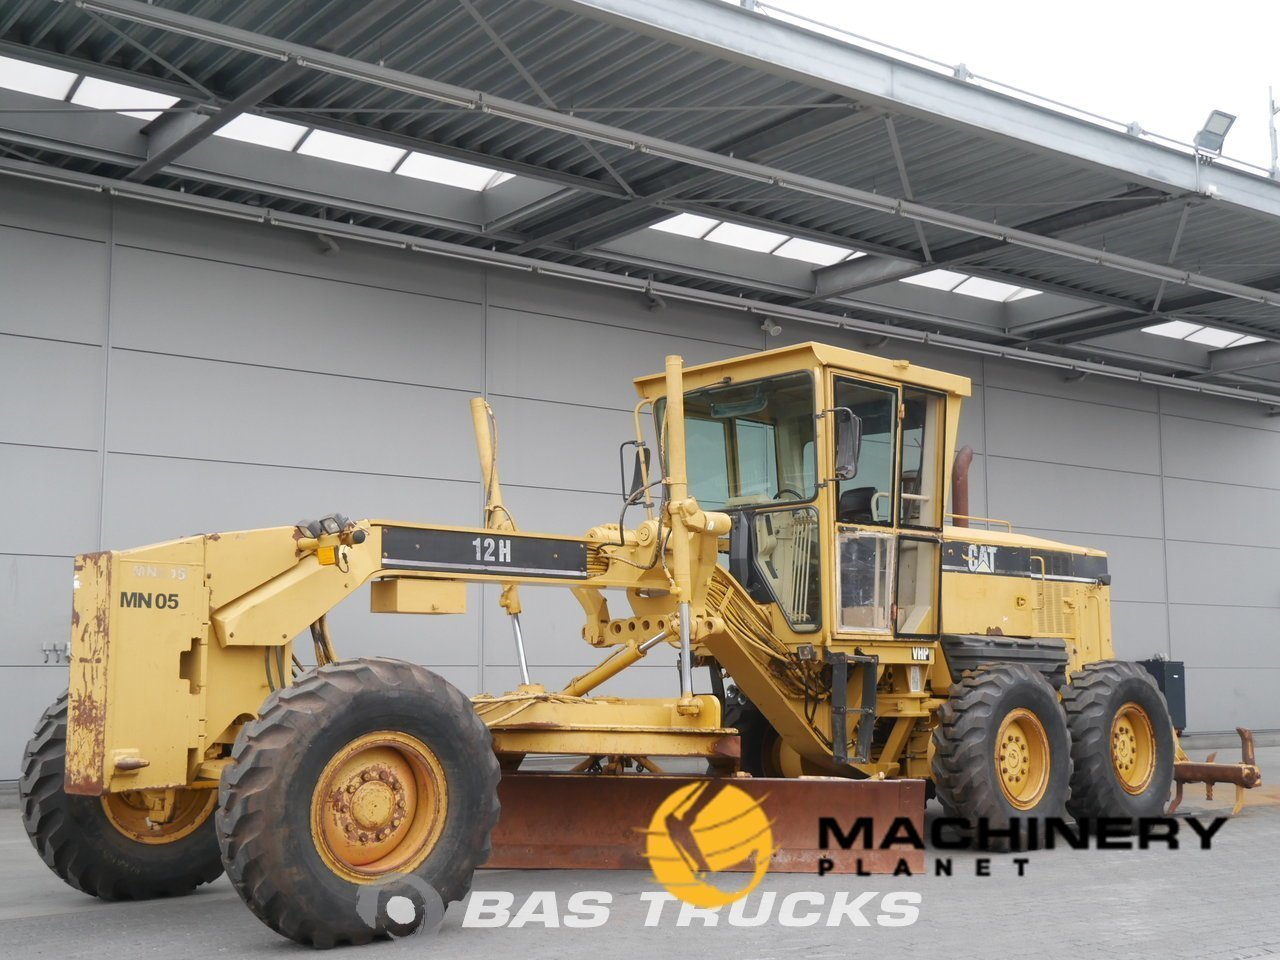 Used-Construction-equipment-Caterpillar-12H-6X4-2006_131970_1-1553948204867_5c9f5e2cd3c19-1.jpg